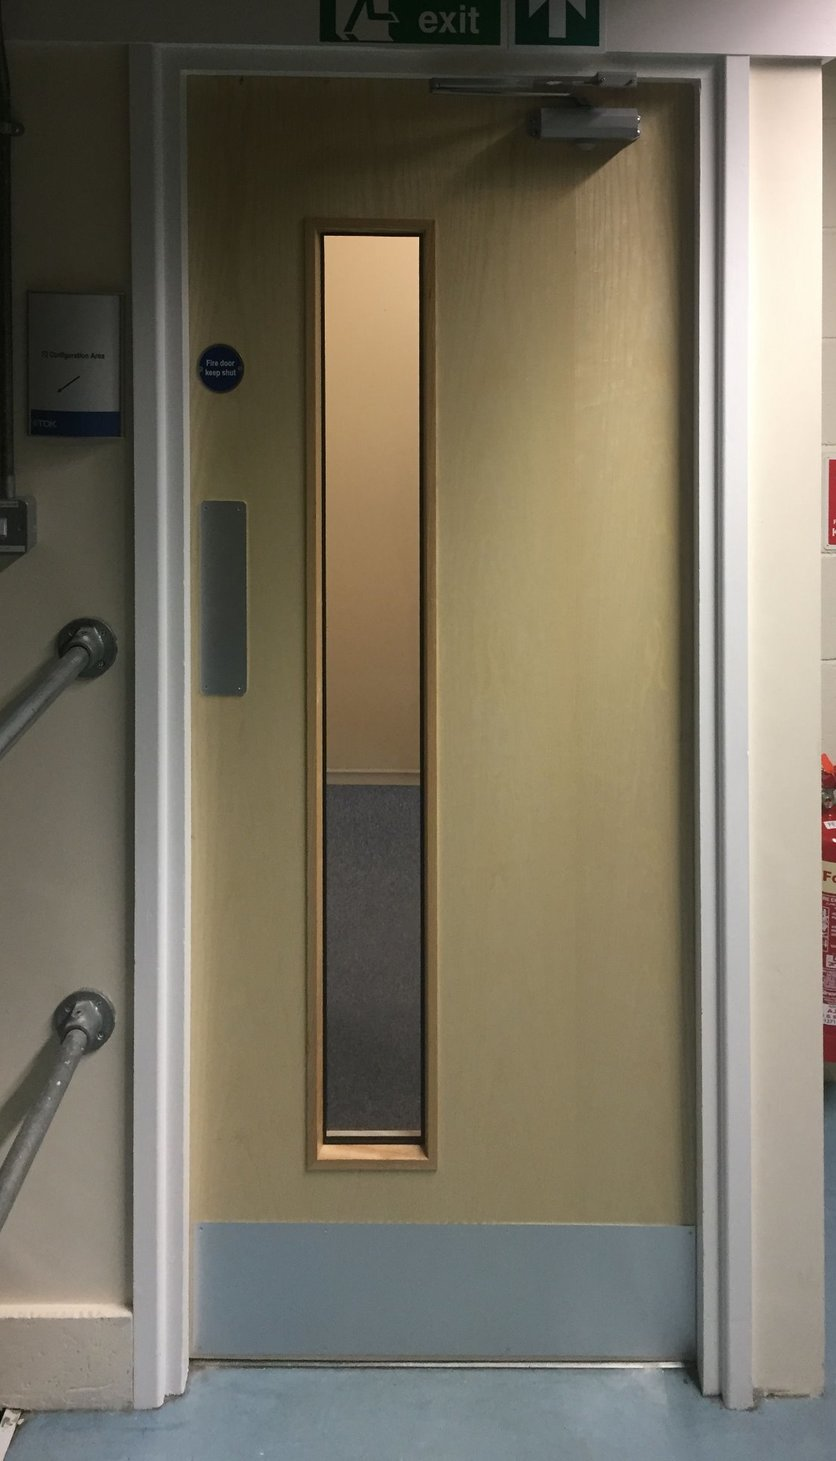 Old doors removed, installed replacement Ash doors with vision panels. New fire rated ironmongery fitted, correct signage, door closures and intumescent smoke seals for a North Devon Factory